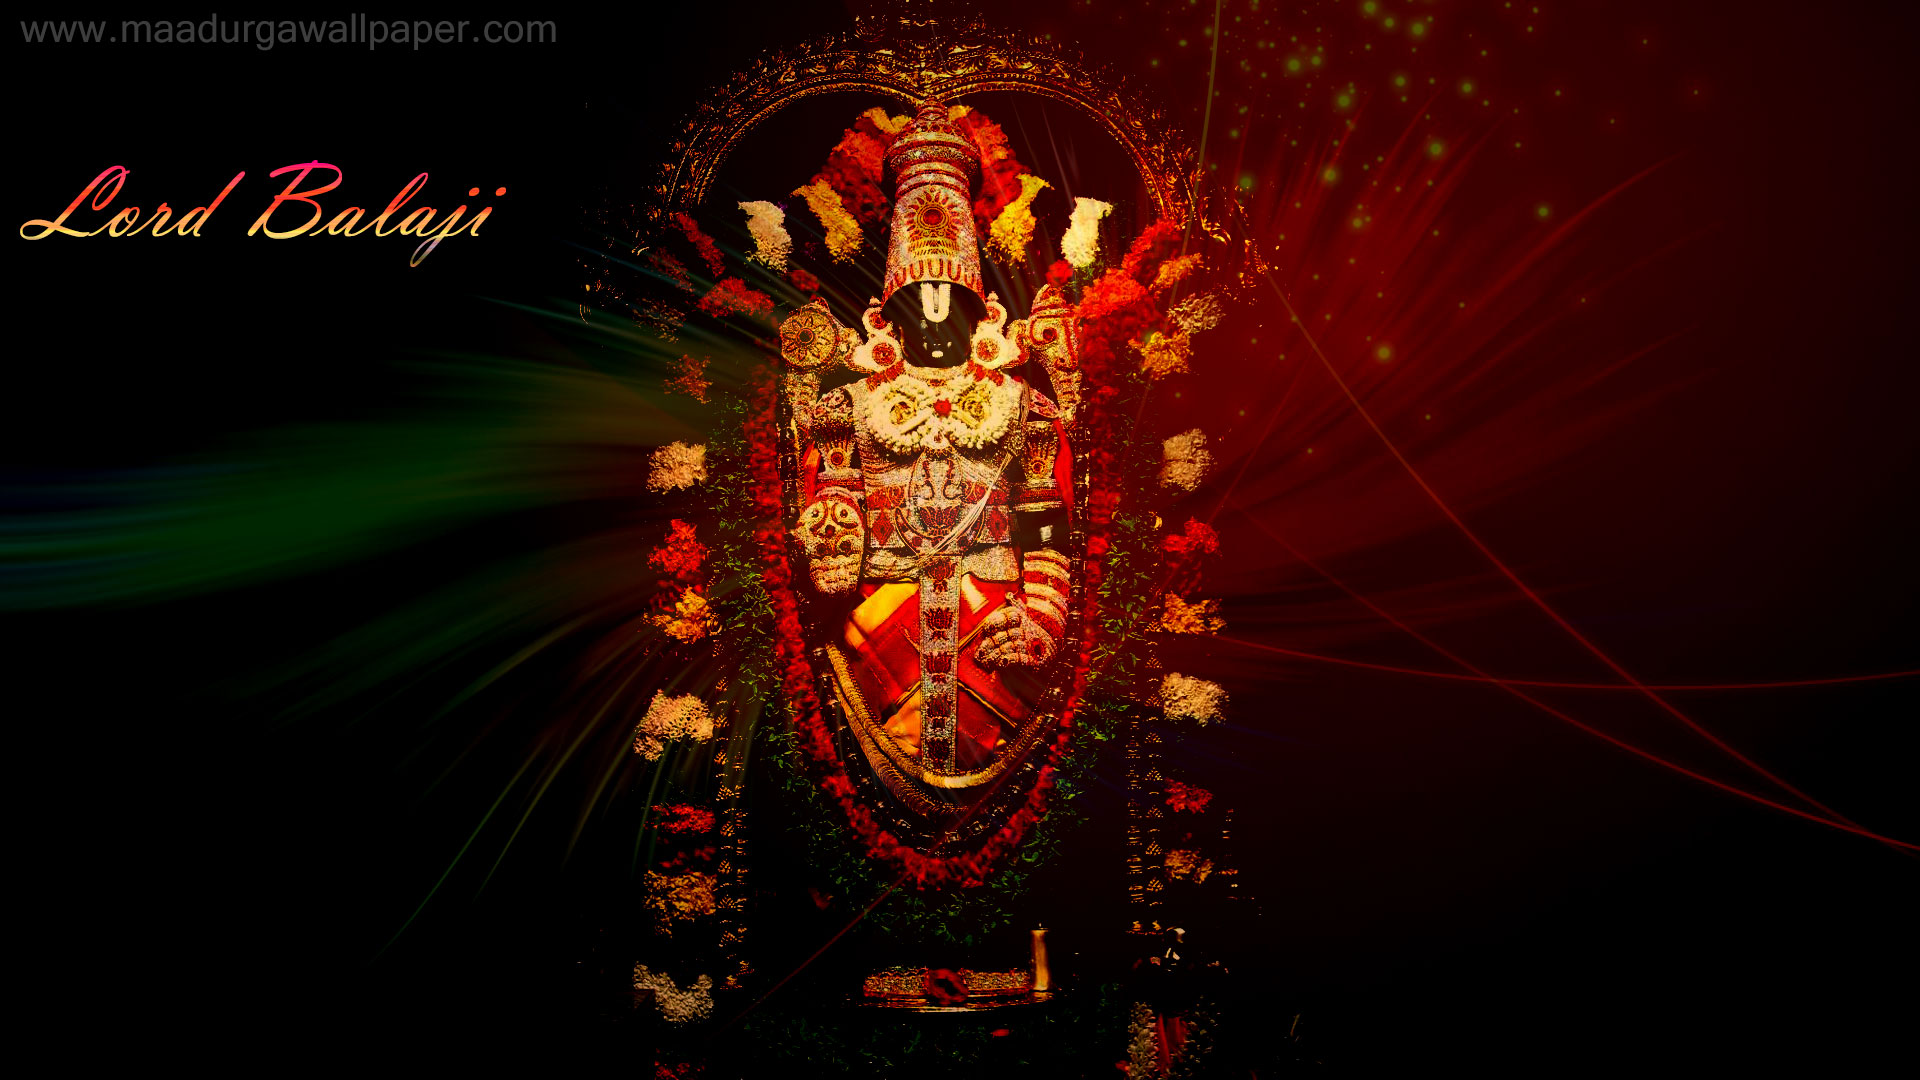 Lord Balaji Photo Venkateswara Swamy Hd Wallpapers 1920x1080 Download 1920x1080 Download Hd Wallpaper Wallpapertip